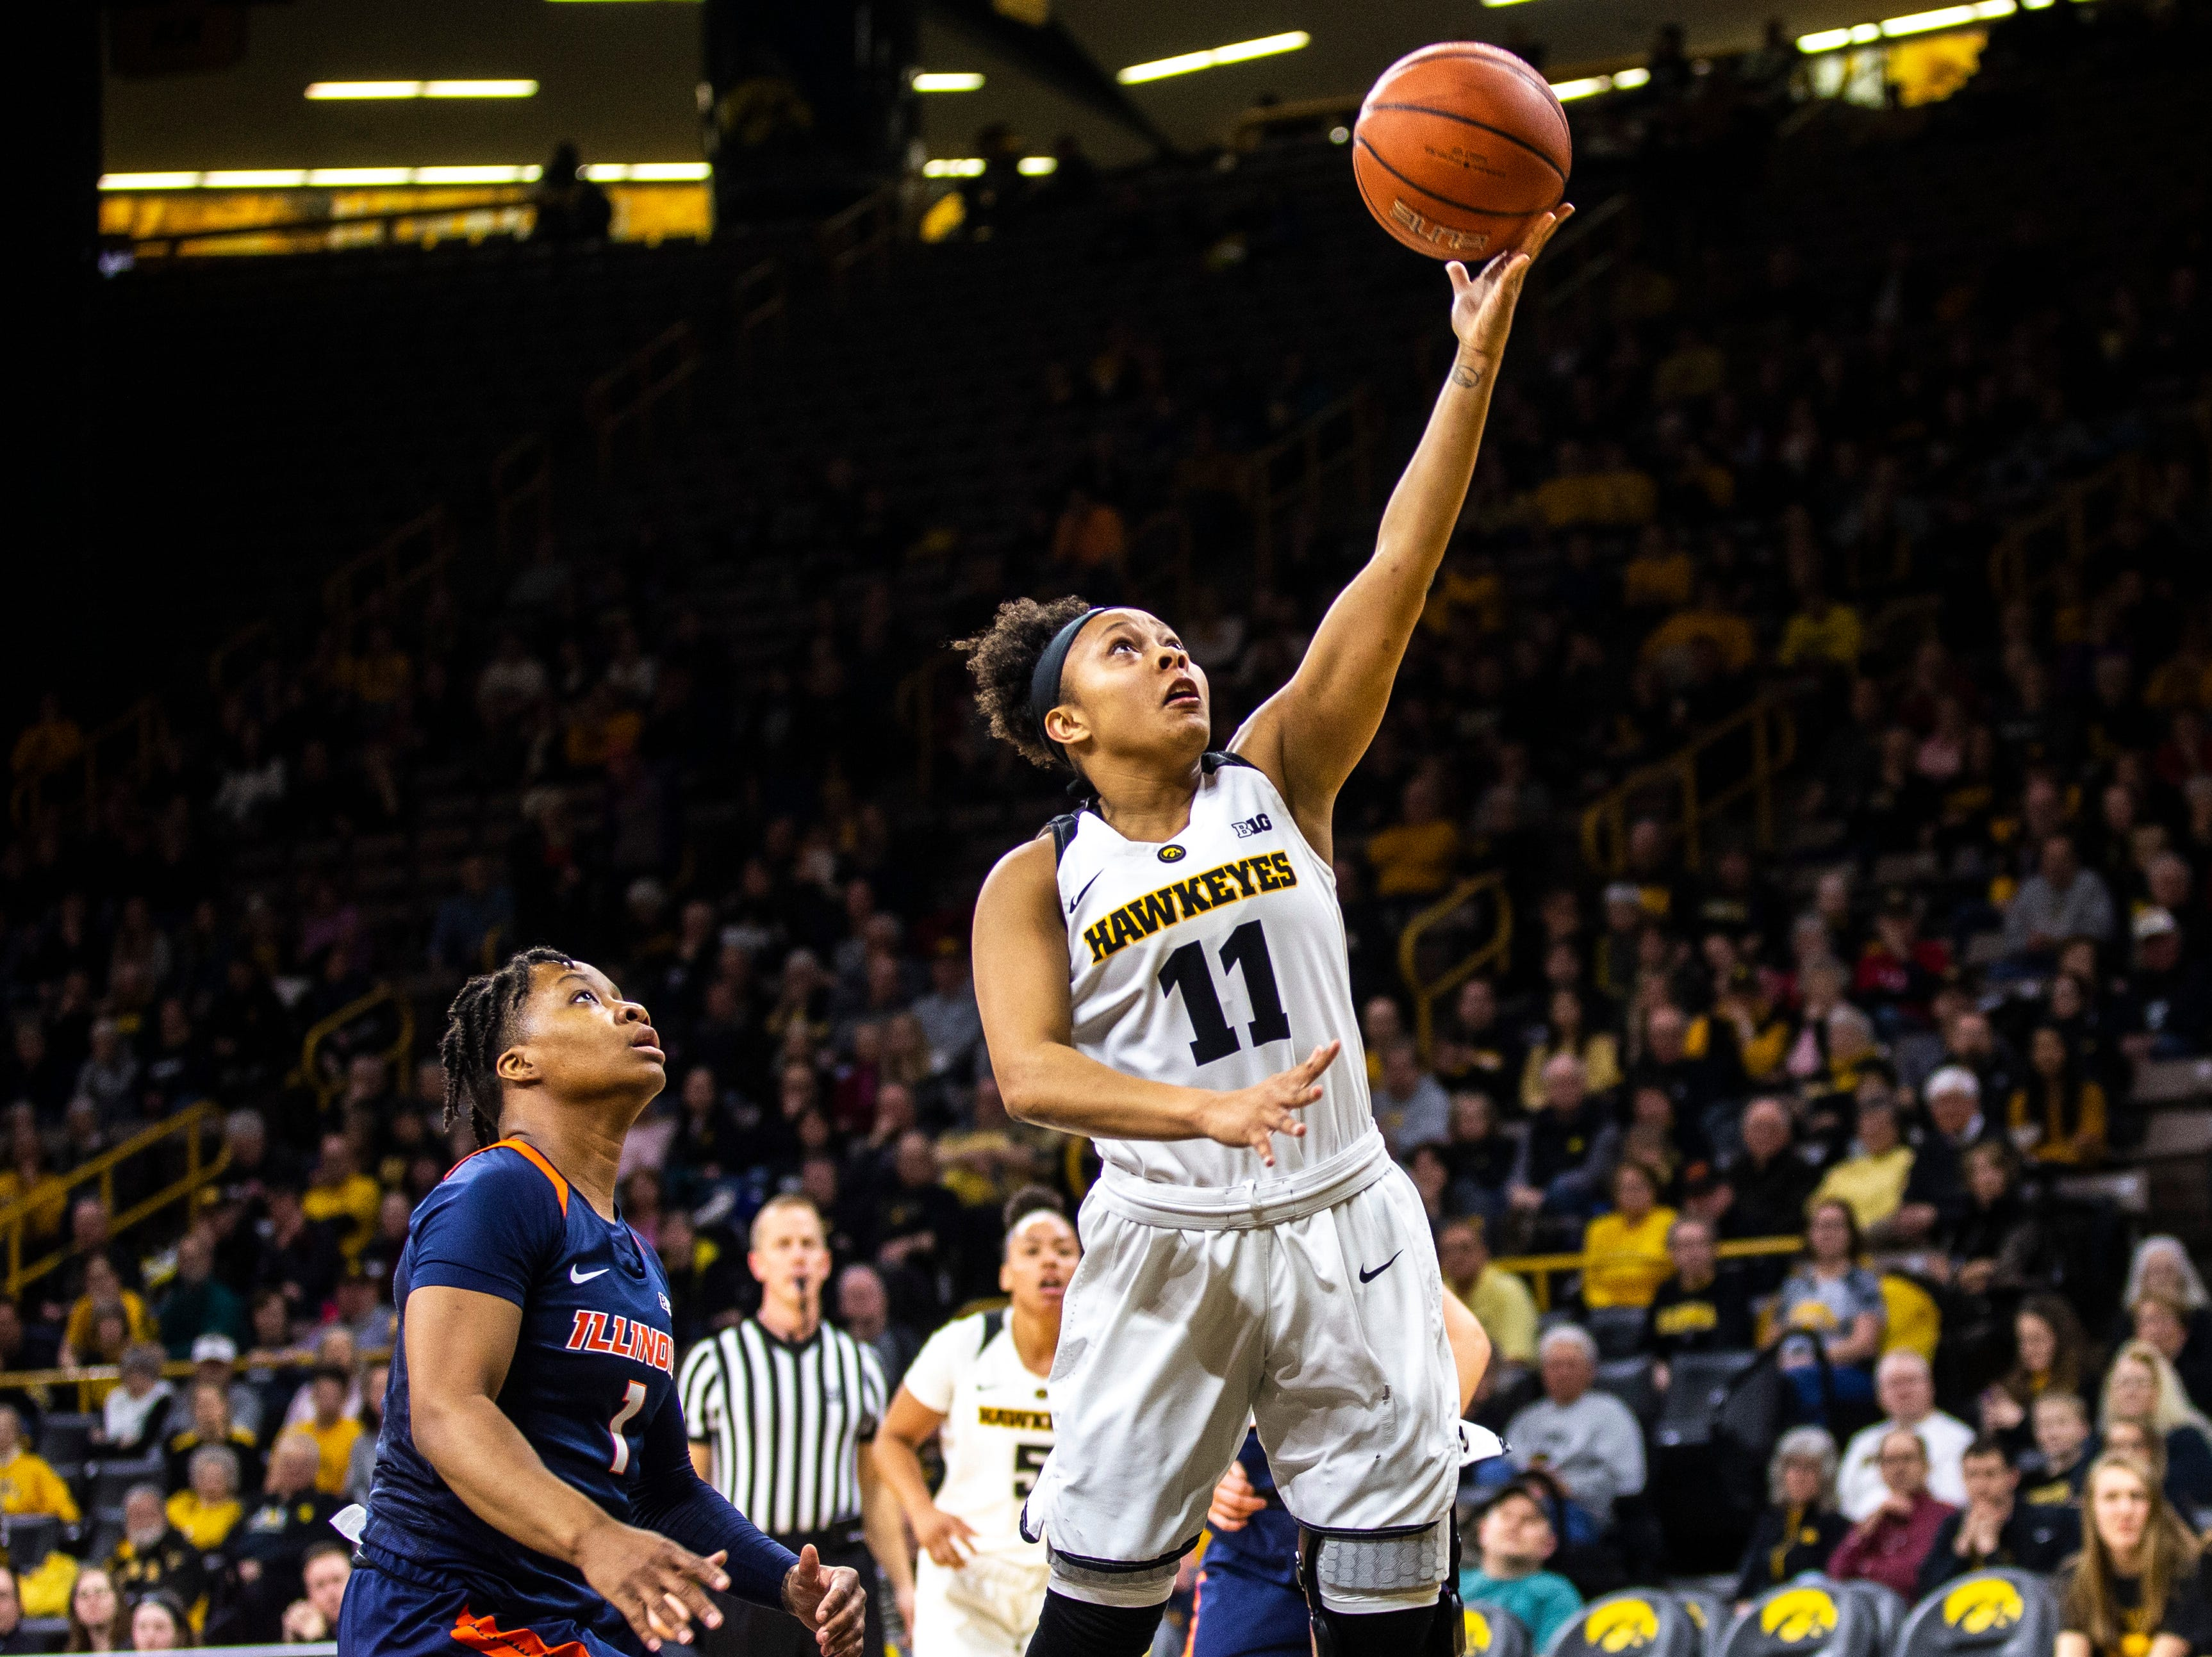 Iowa guard Tania Davis (11) makes a layup while Illinois guard Brandi Beasley defends during a NCAA Big Ten Conference women's basketball game on Thursday, Feb. 14, 2019 at Carver-Hawkeye Arena in Iowa City, Iowa.